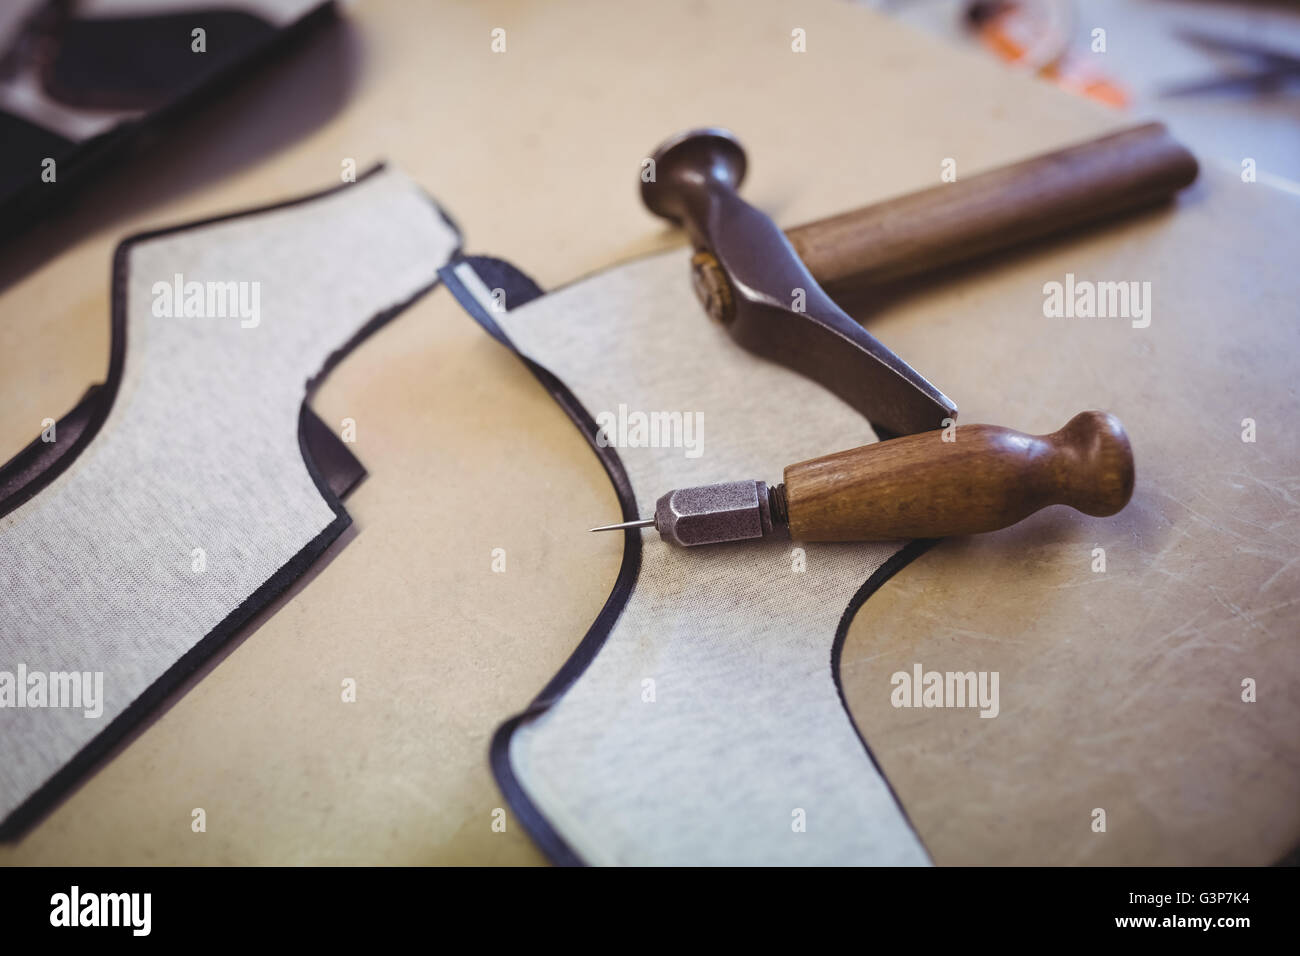 Hammer and awl - Stock Image